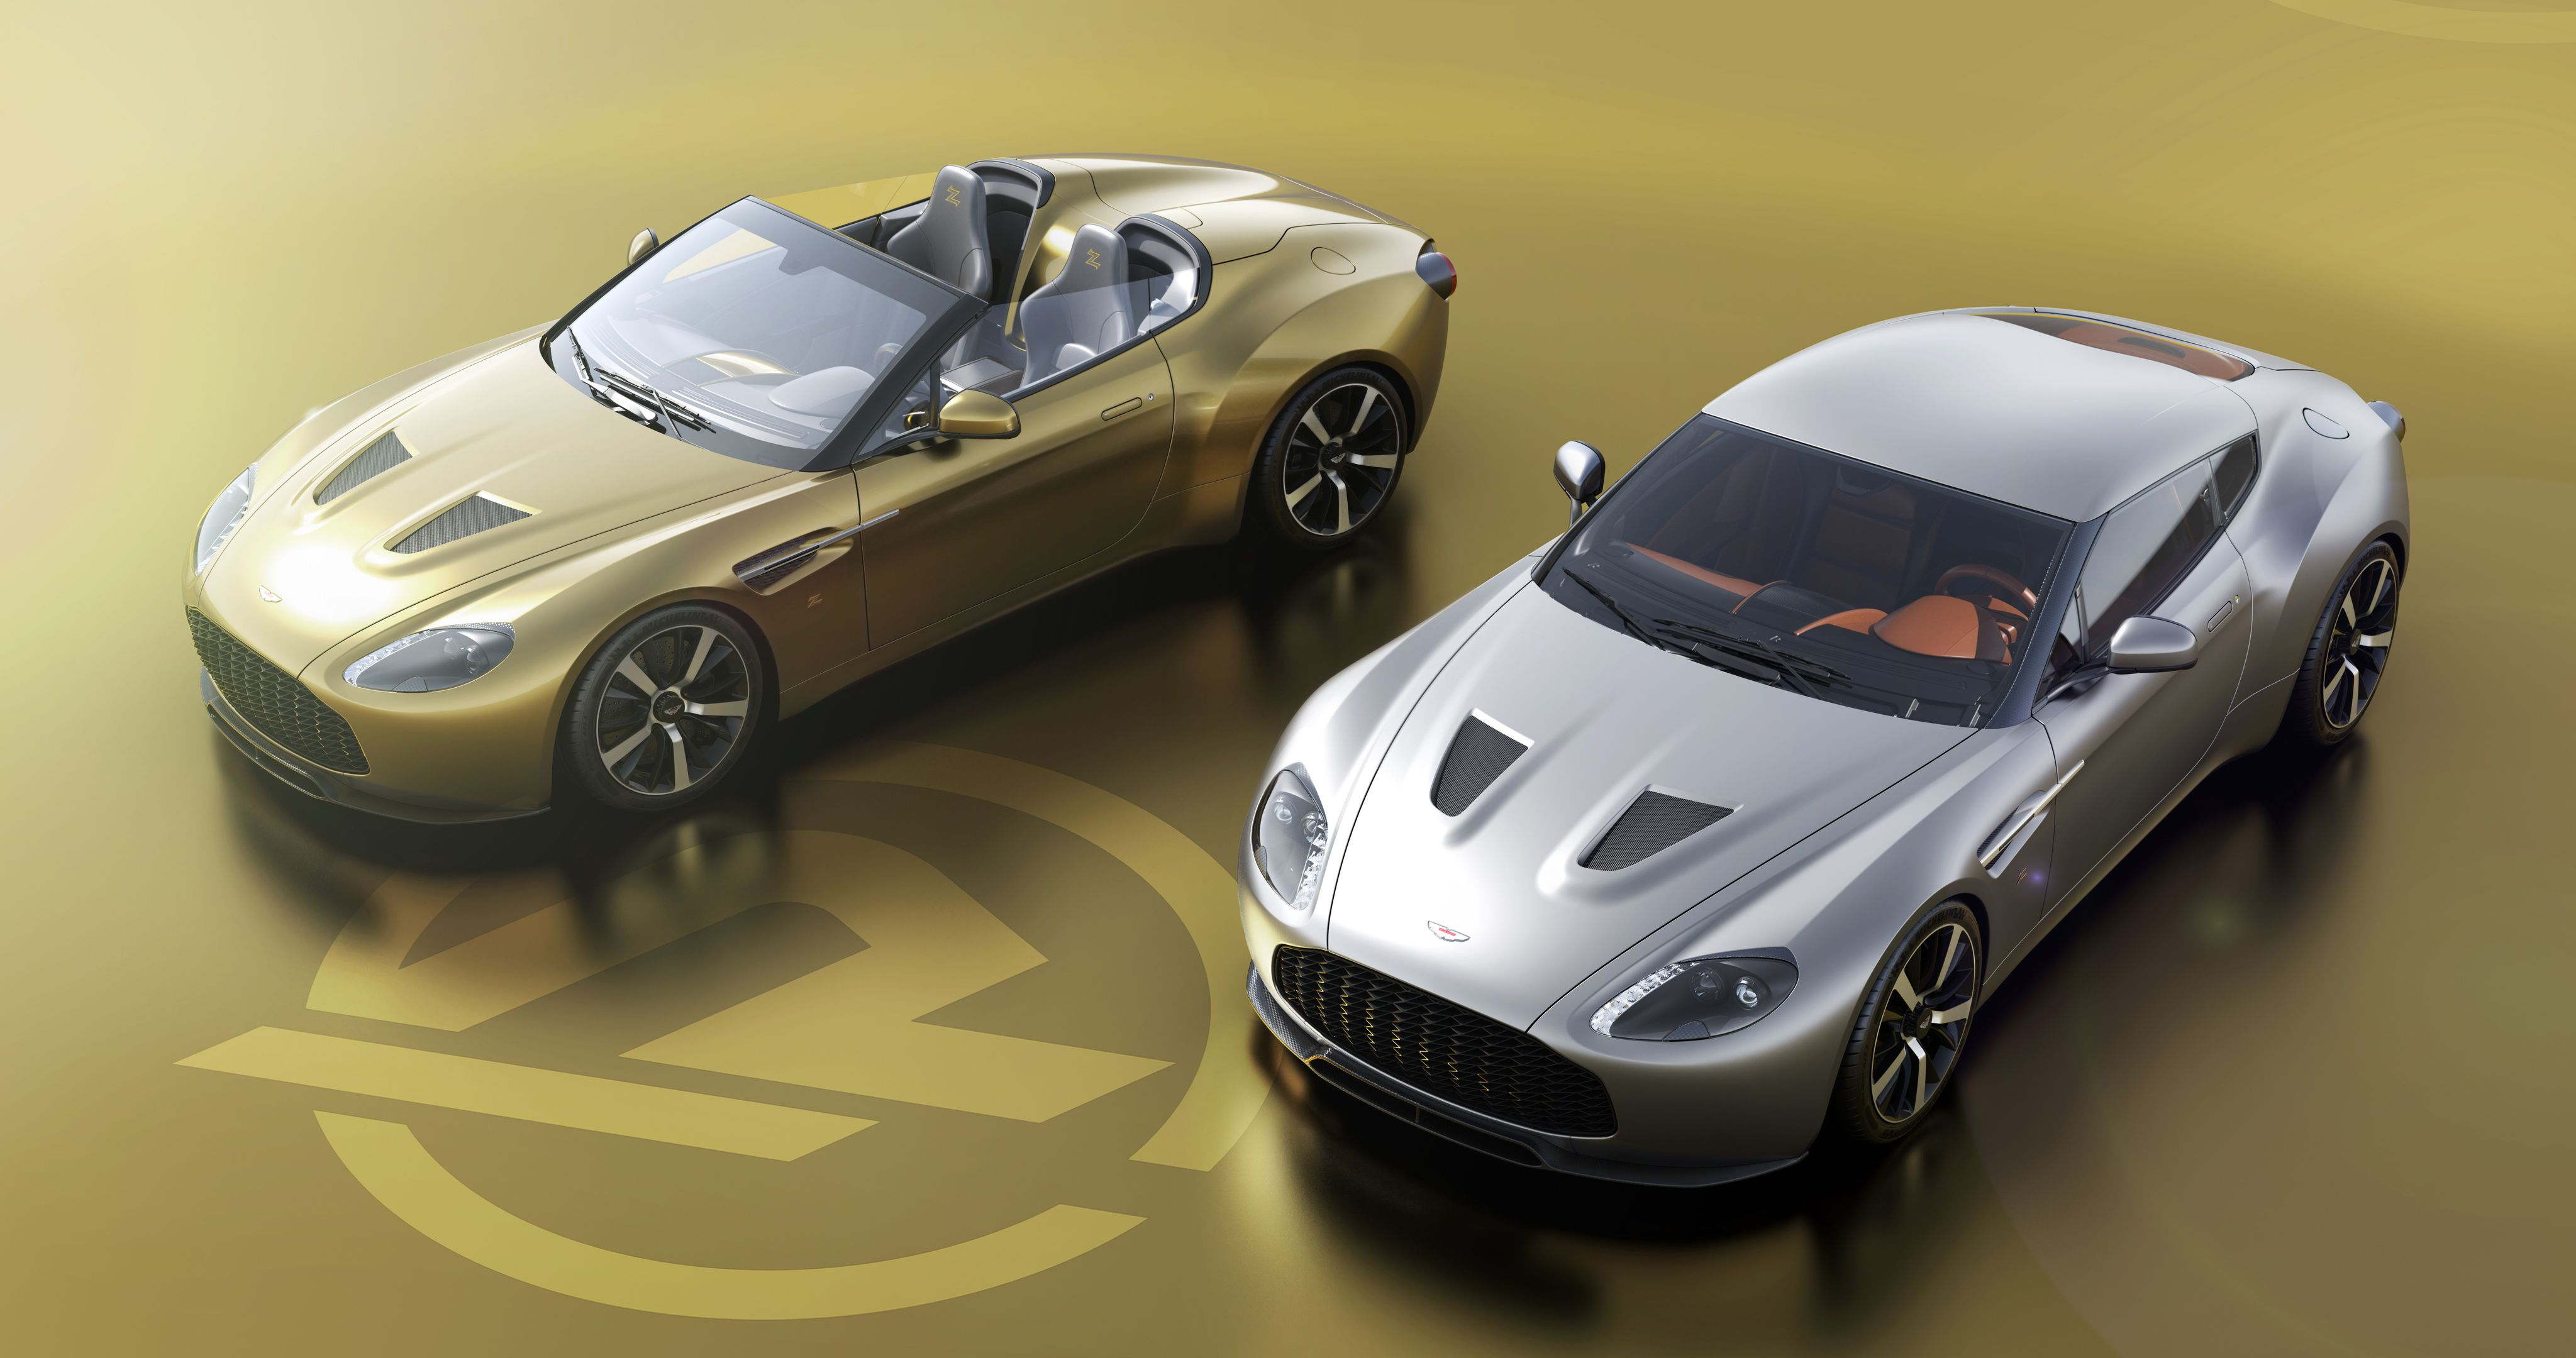 Aston Martin Vantage Zagato V12 Coupe Speedster Pair Revealed